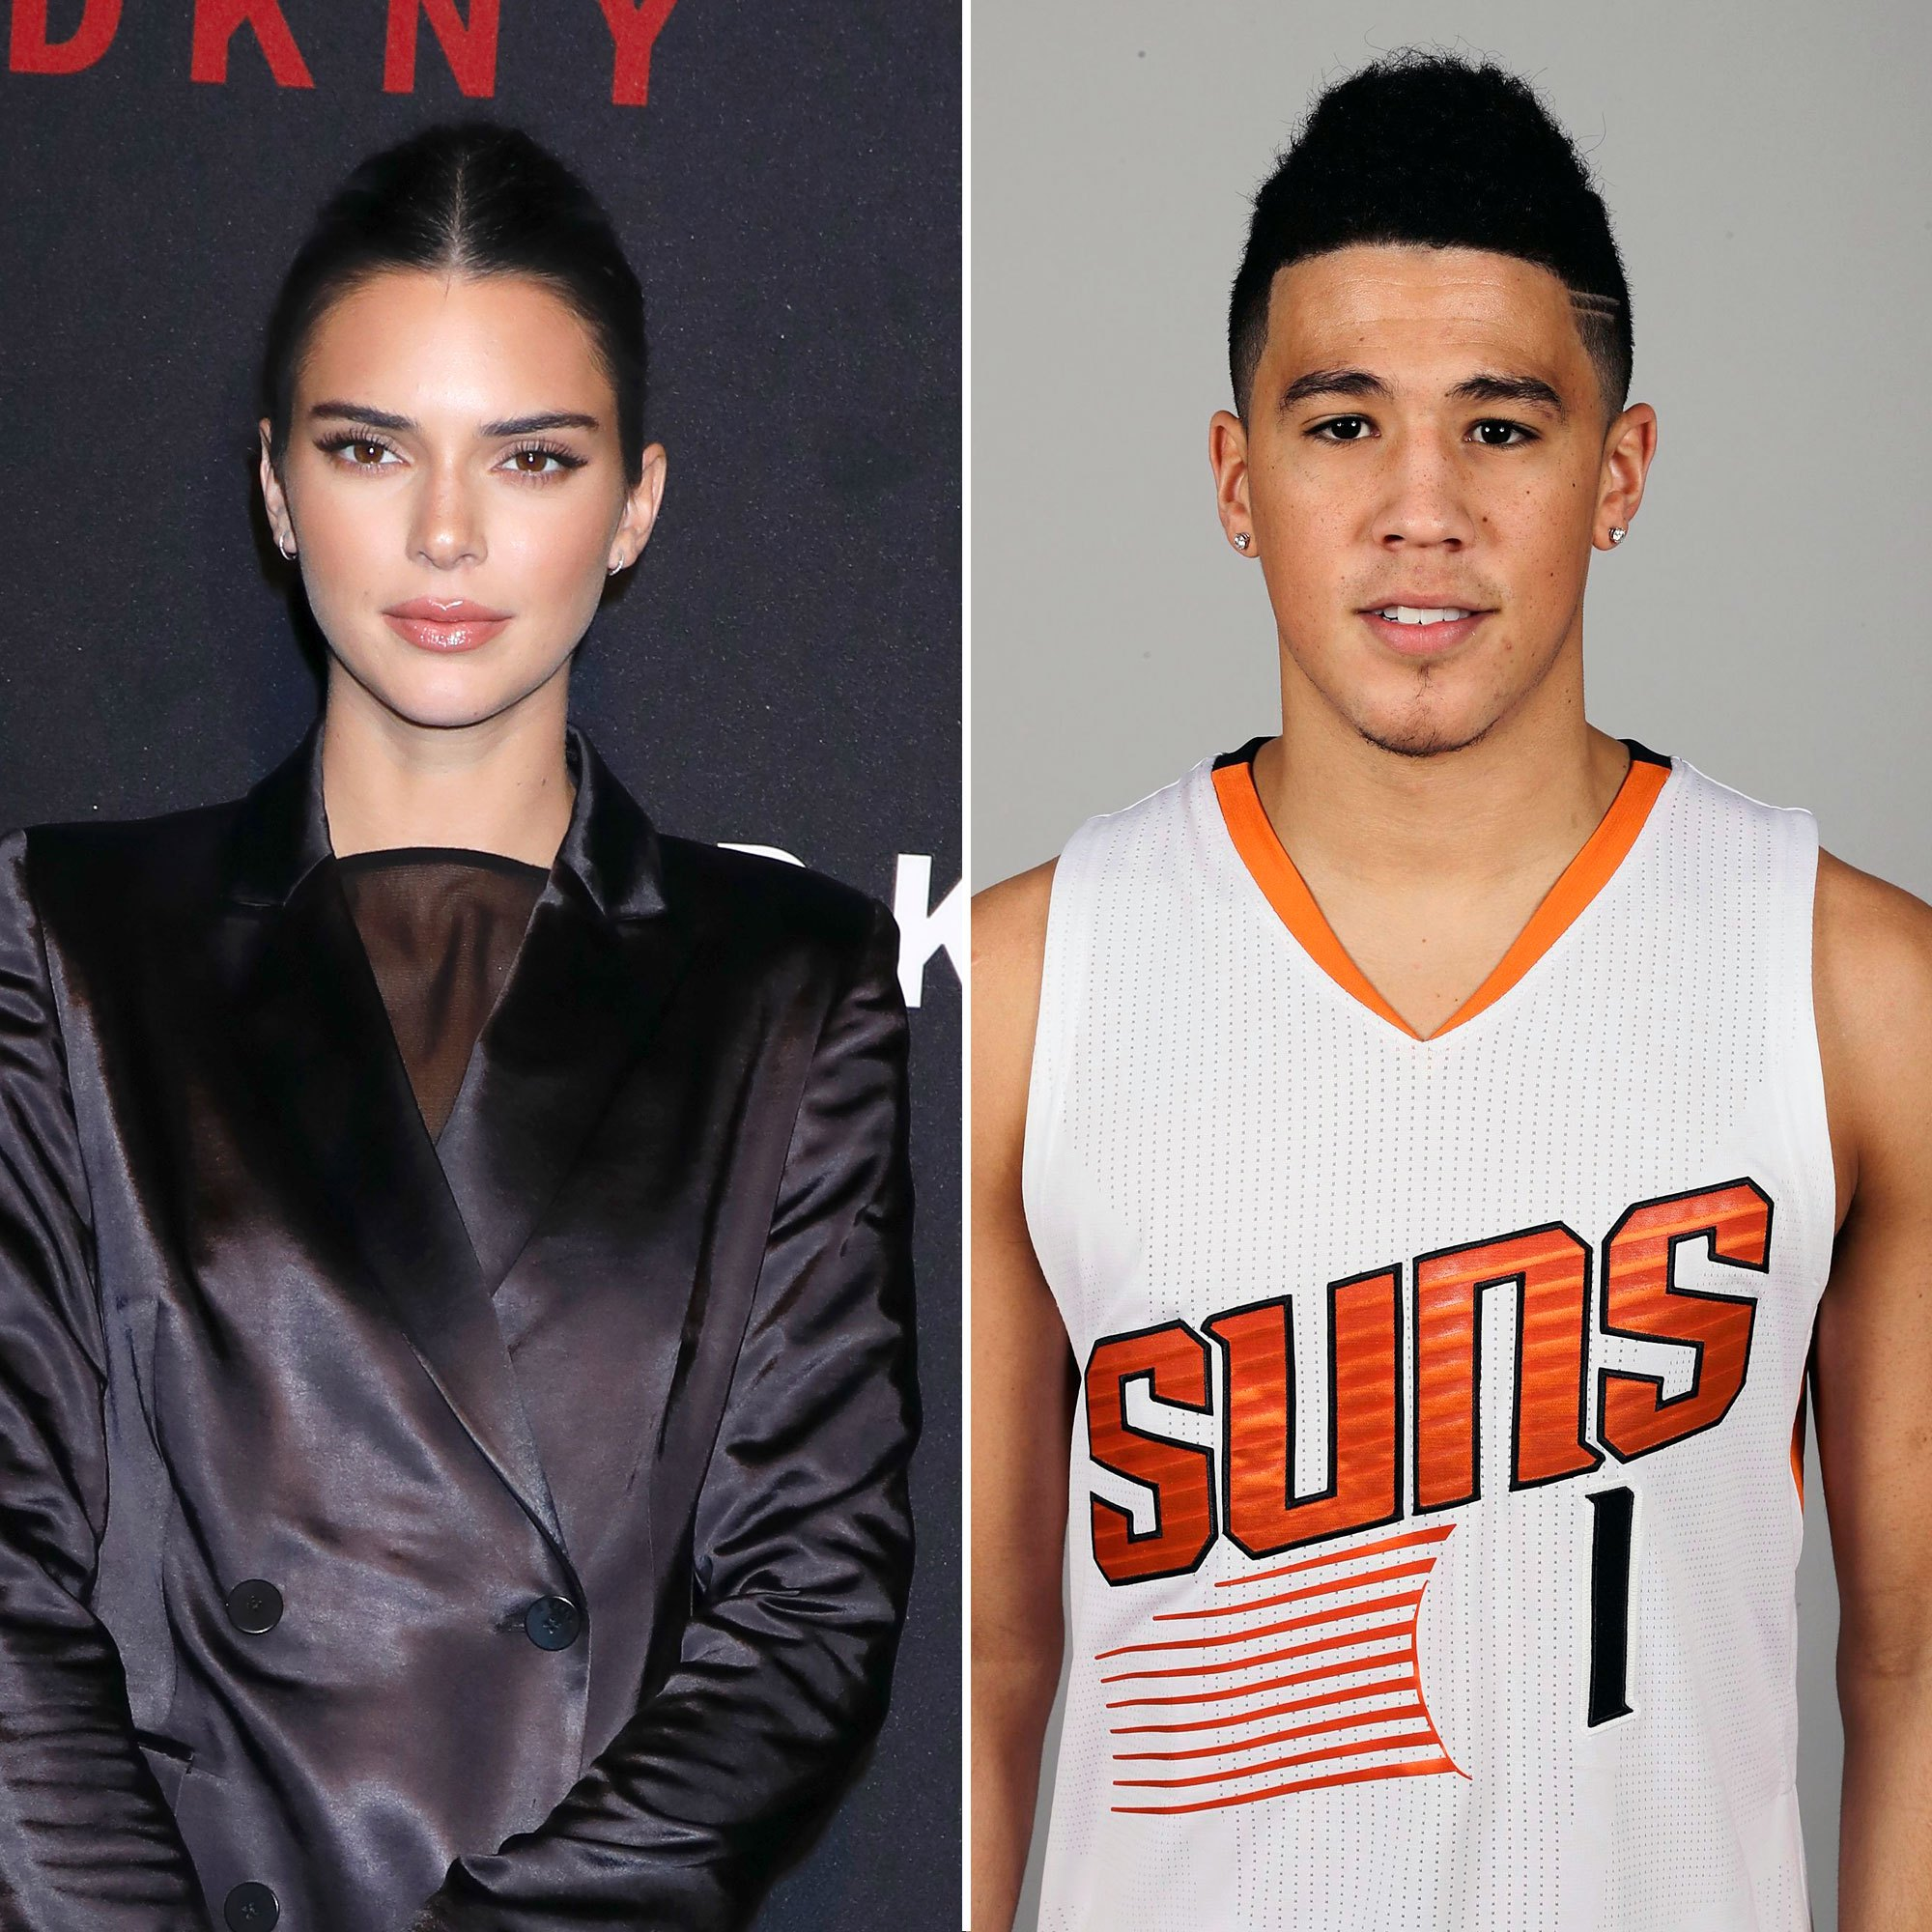 KUWTK: Kendall Jenner finally opens up about her and Devin Booker's romance a year after dating him!